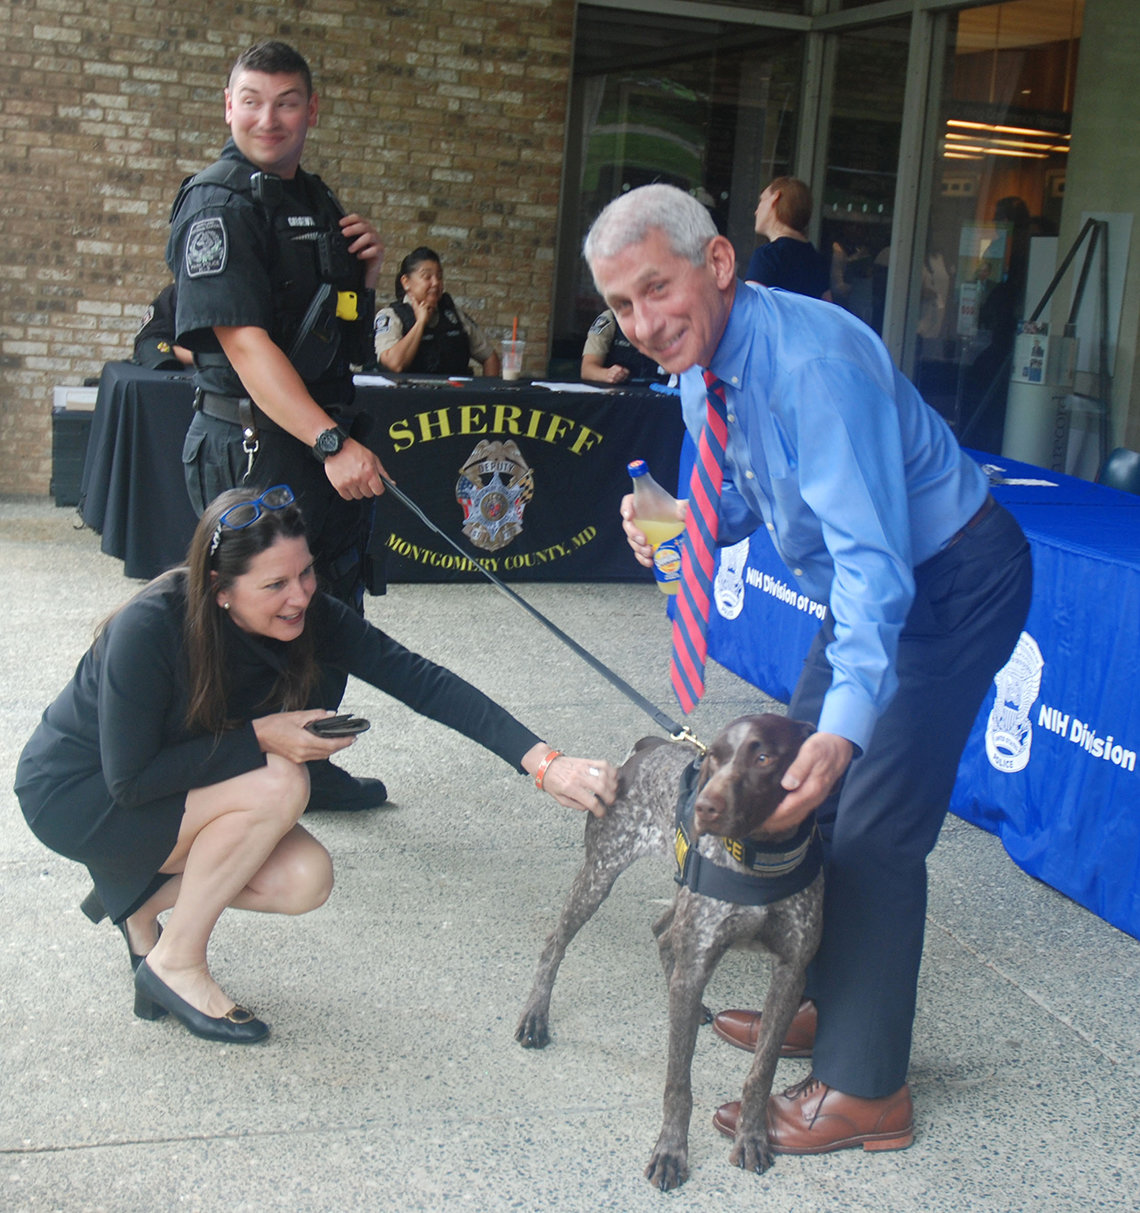 Peter Girgenti of Montgomery County Park Police, with Xena and Dr. Anthony Fauci.